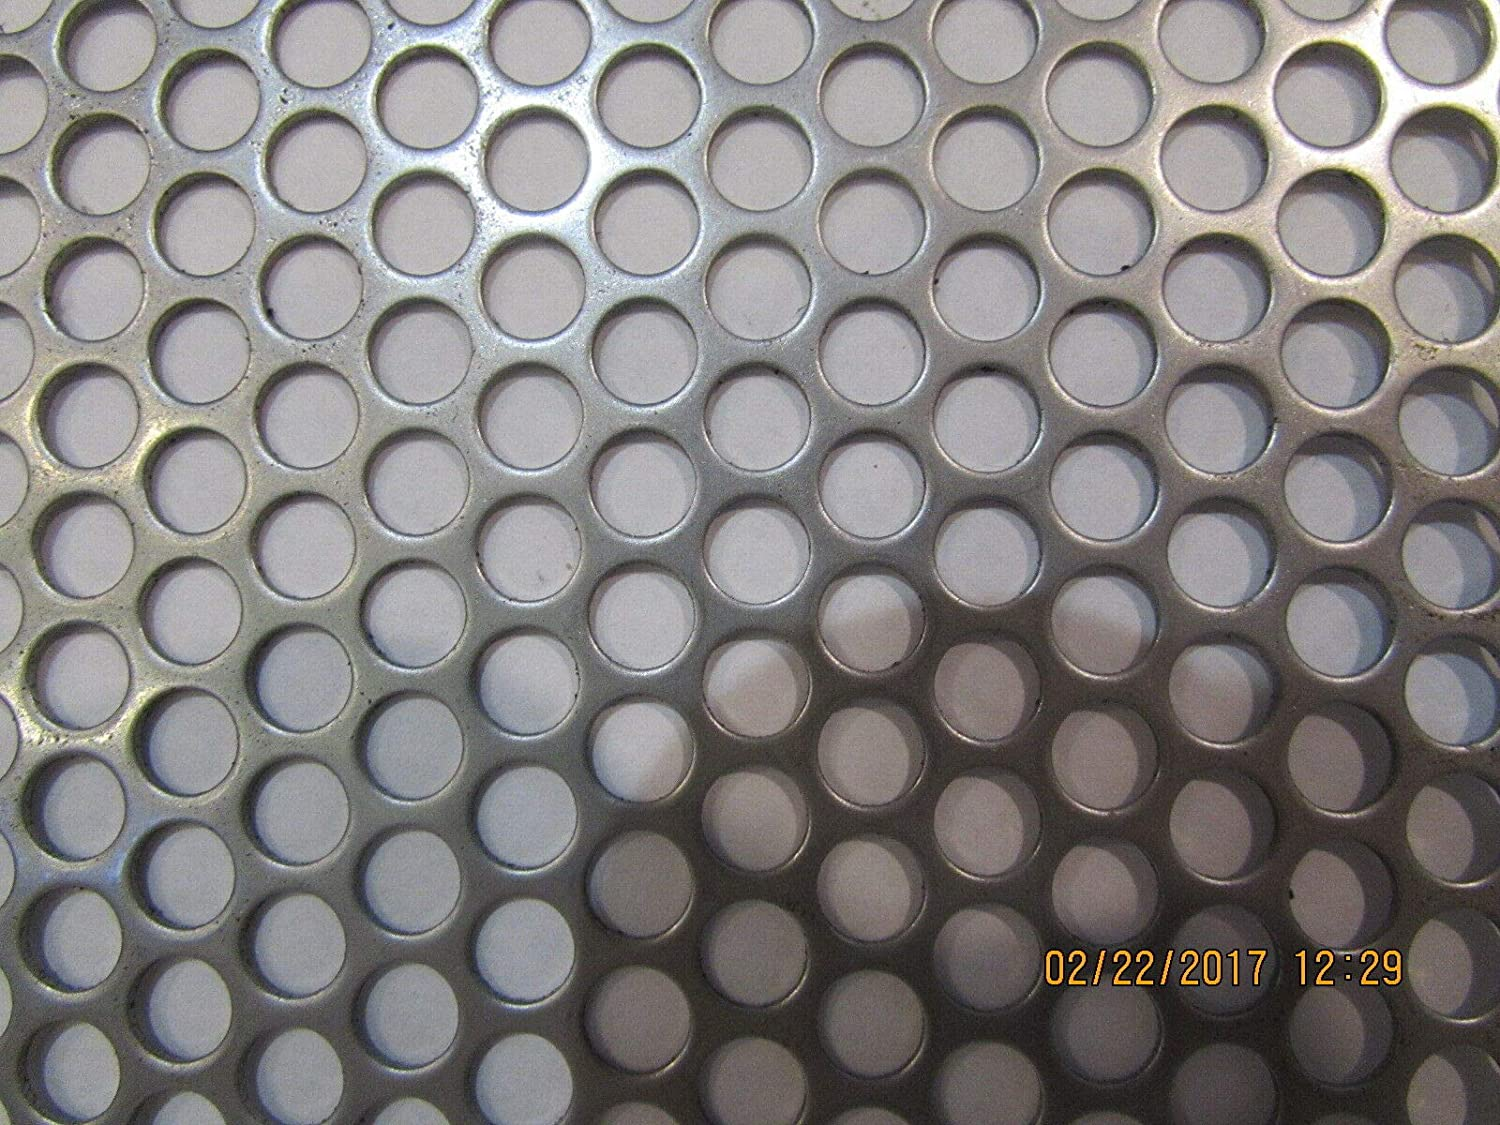 20 gauge Price per 10 square inch Perforated 304 Stainless Steel 1//4 inch hole